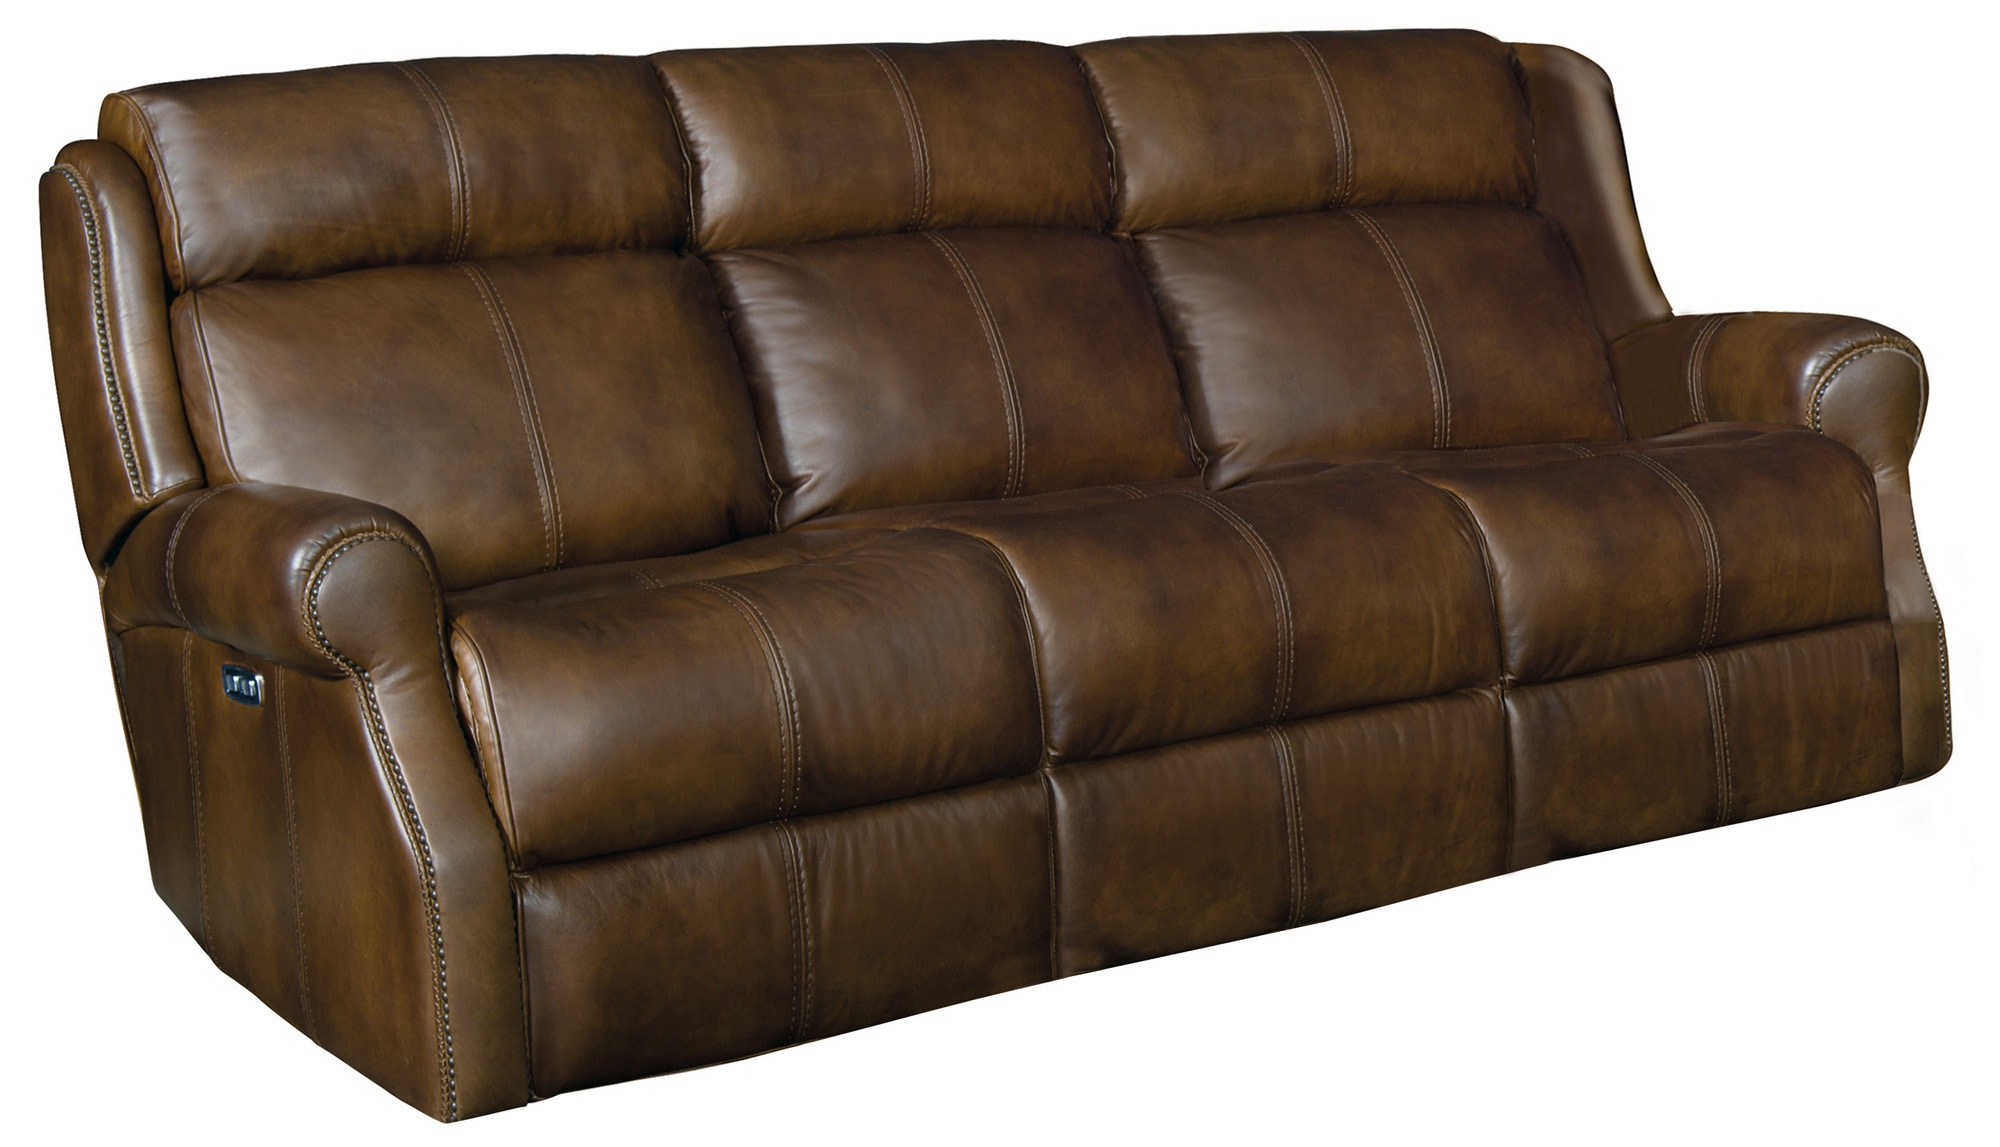 Exceptionnel Bernhardt Furniture McGwire Power Motion Sofa 297RL